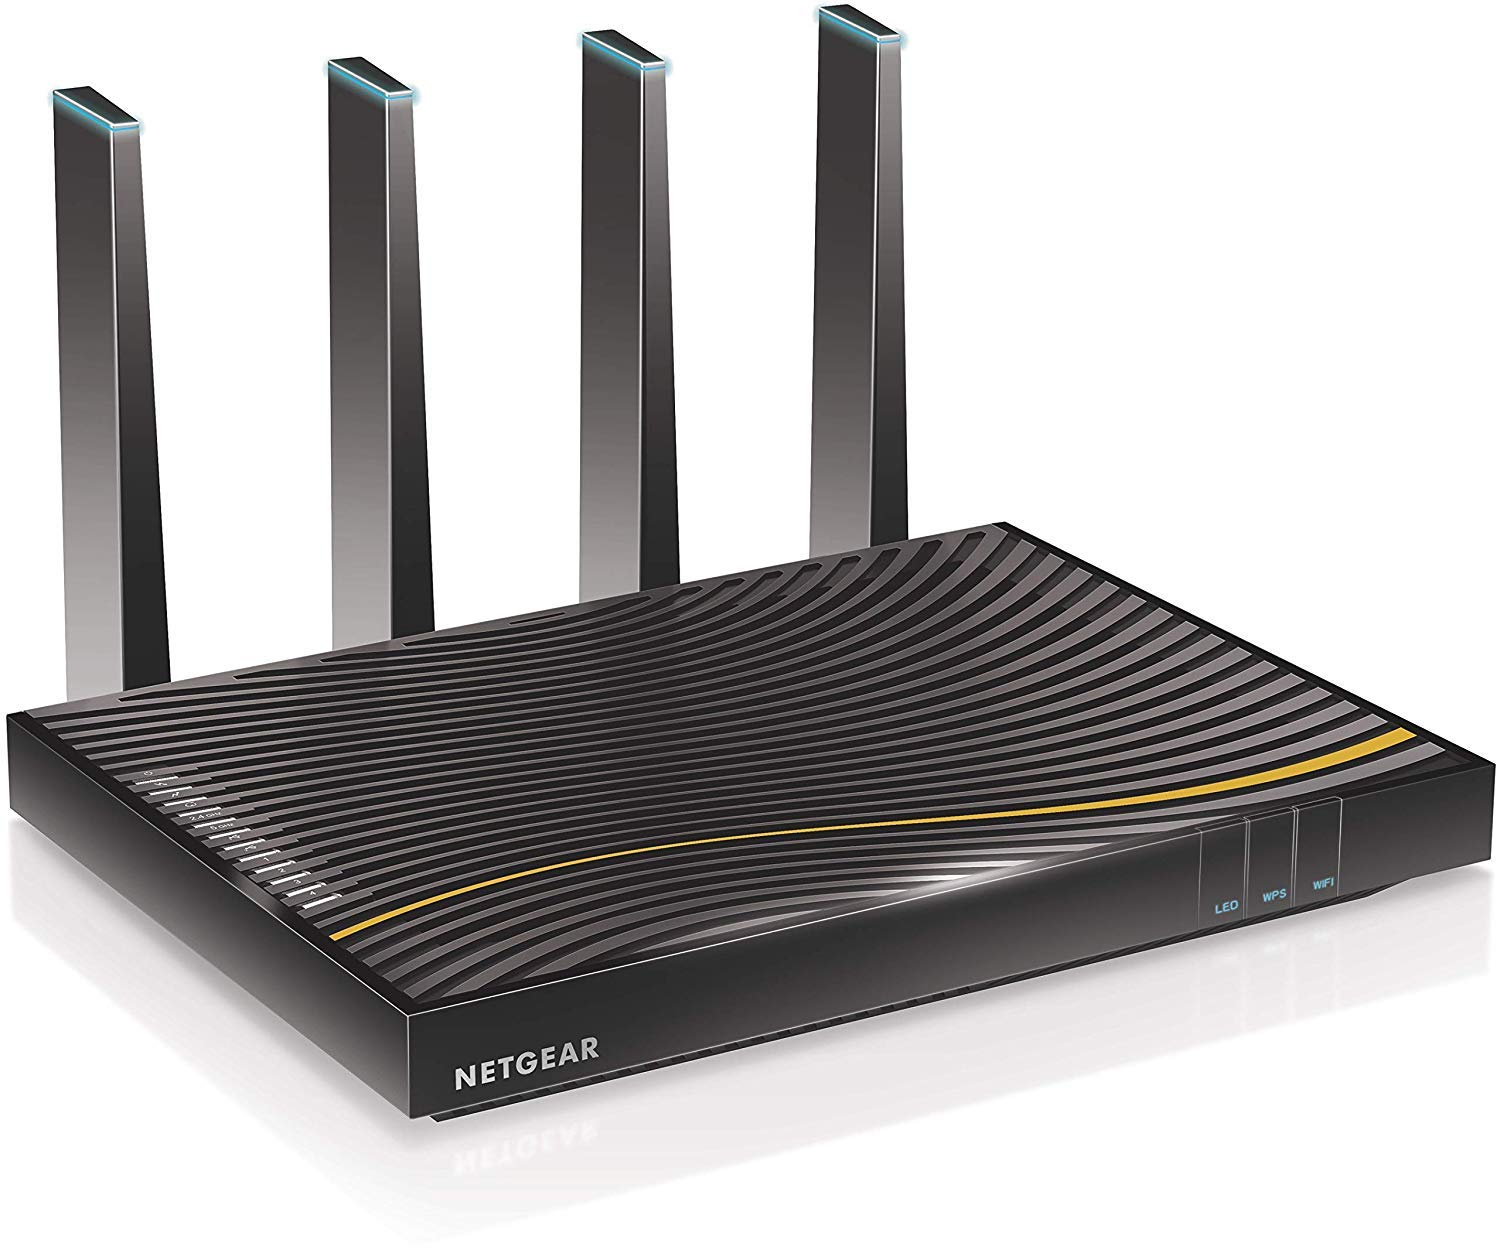 Netgear C7500-100NAS NETGEAR Nighthawk X4 (24x8) AC3200 DOCSIS 3.0 Cable Modem WiFi Router Combo Gateway| Certified for Xfinity by Comcast, COX, Spectrum & More(C7500-100NAR) (Renewed) by NETGEAR